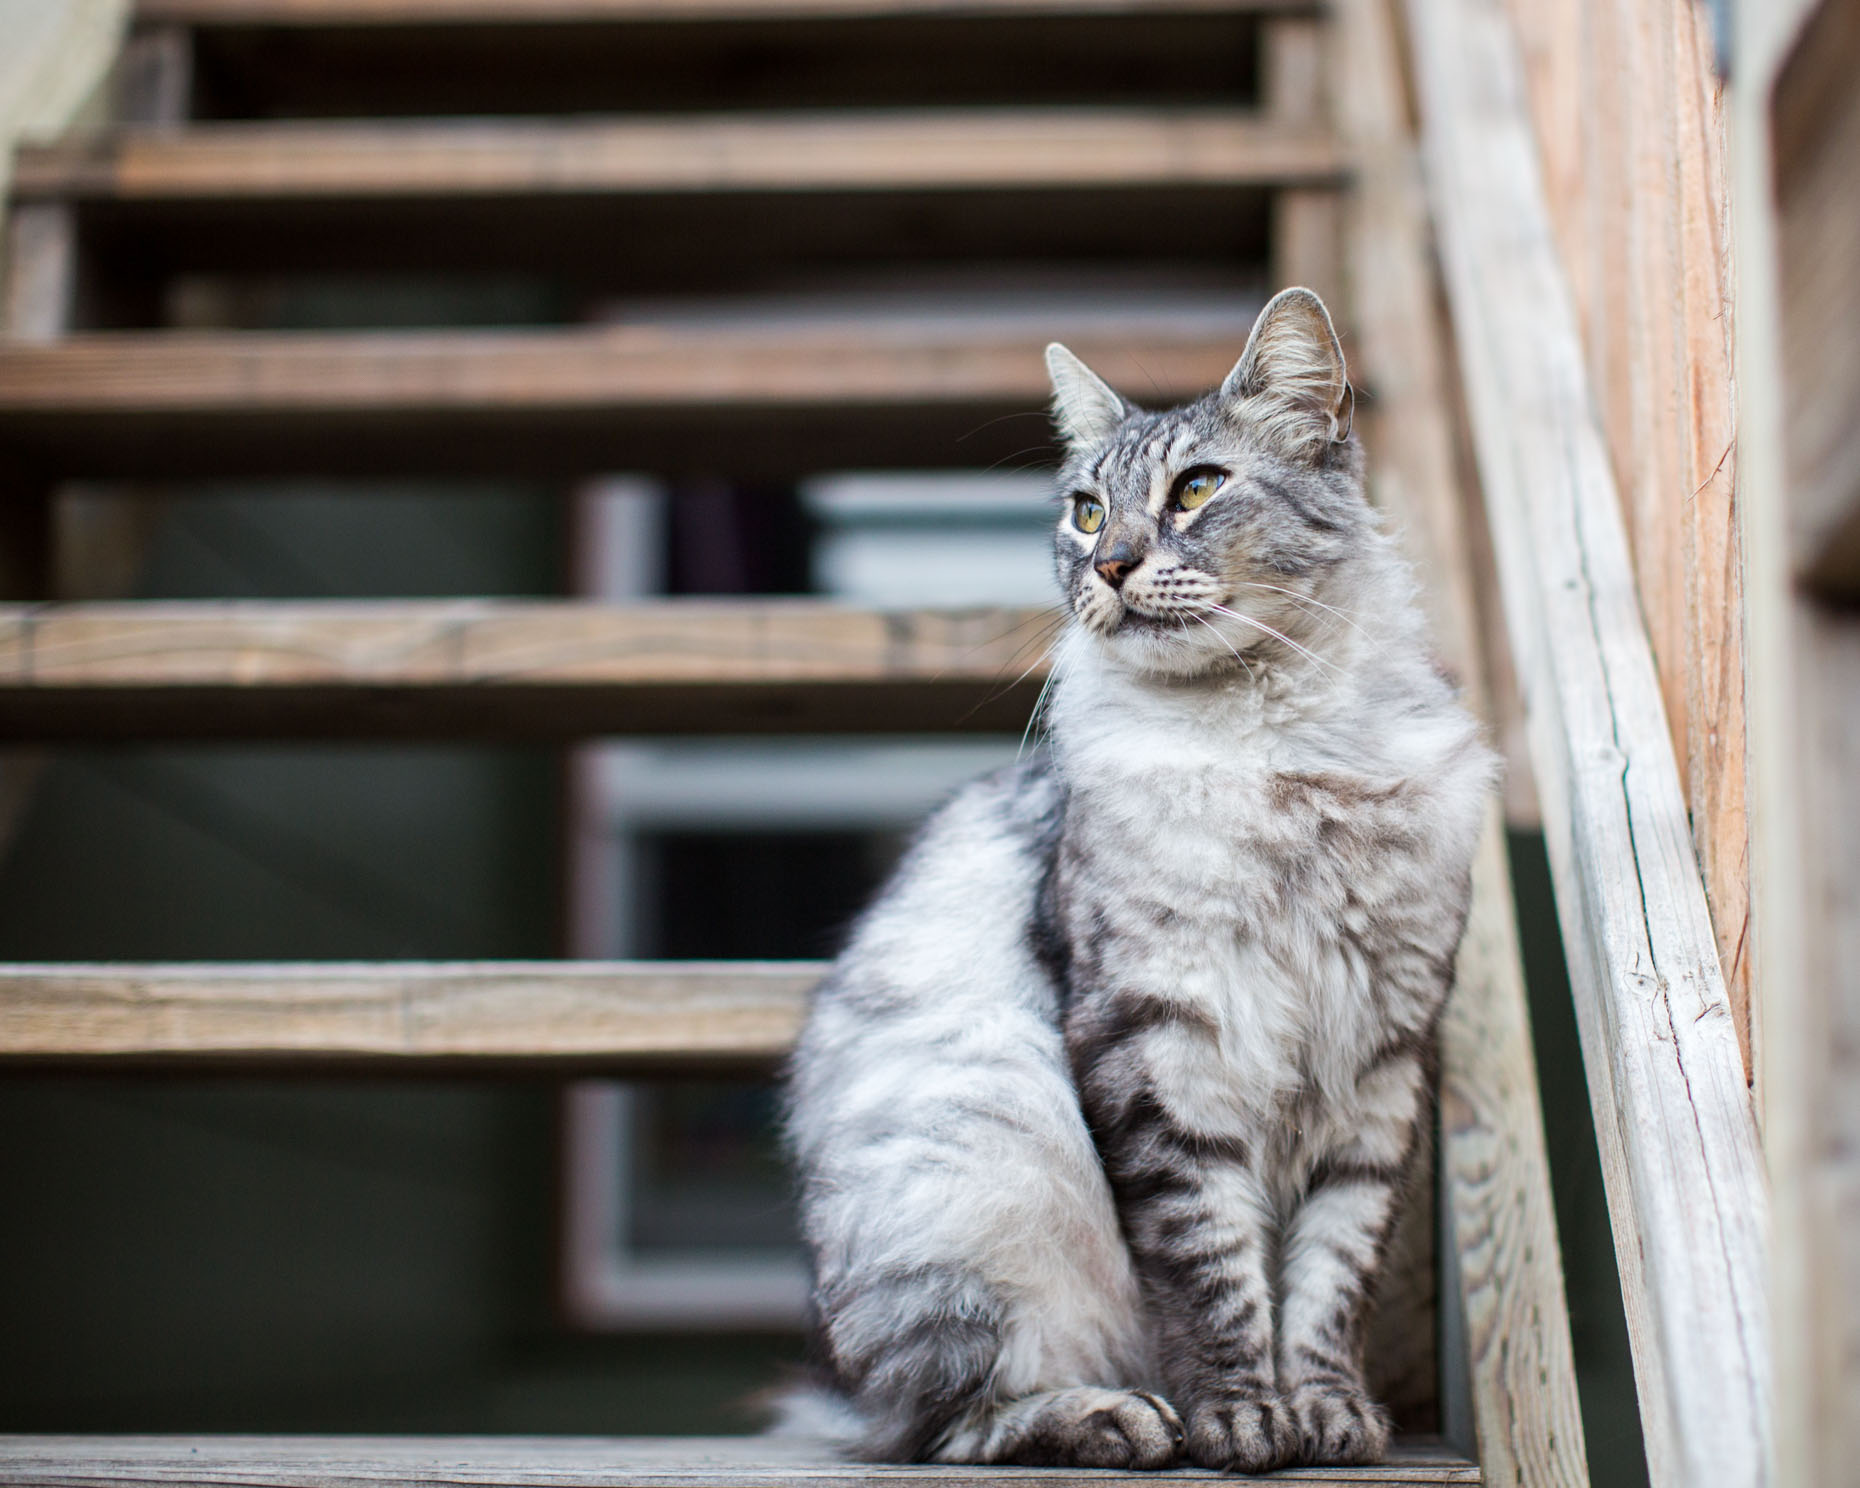 Cat and Animal Photography | Tabby Cat on Stairs by Mark Rogers